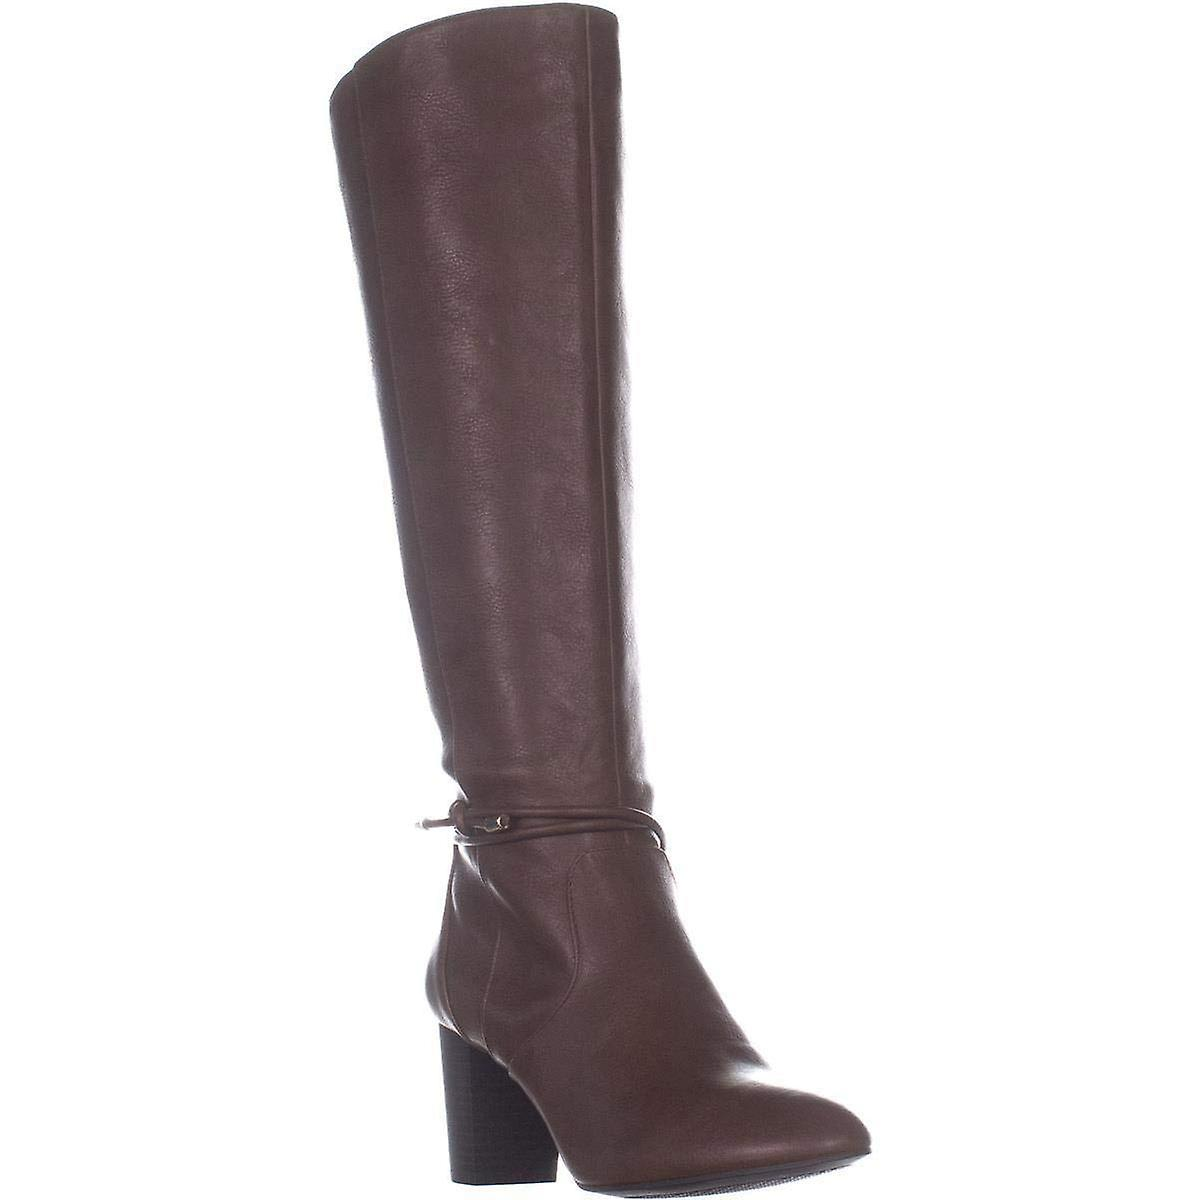 A35 Giliann Wide Calf Knee High Boots, Cognac, 10 Stany Zjednoczone ybVYN